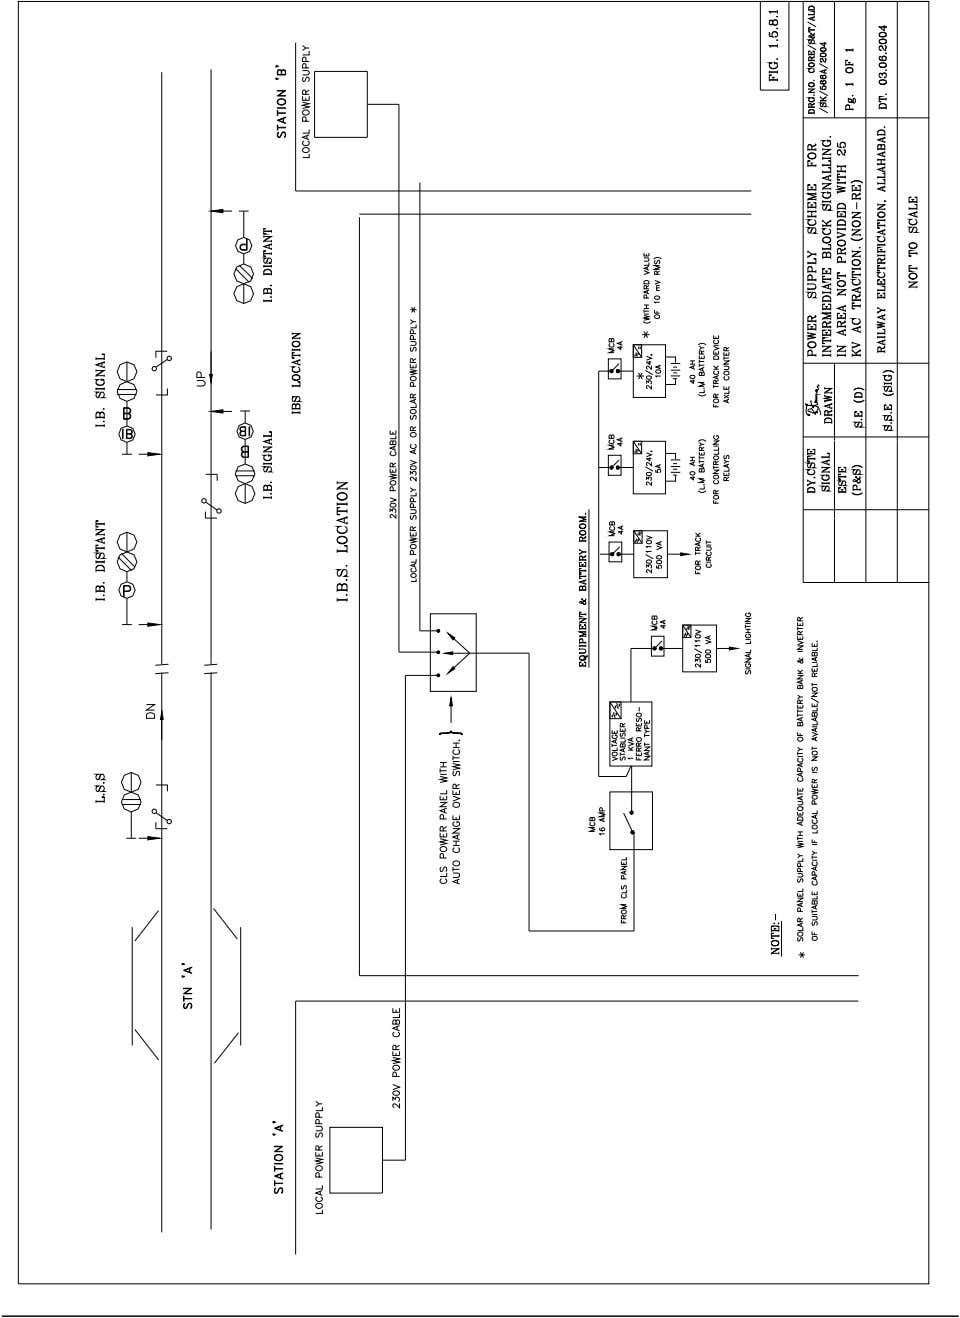 POWER SUPPLY SCHEME FOR IBS Page 37 RLY. SIGNALLING INSTALLATION & QUALITY HAND BOOK